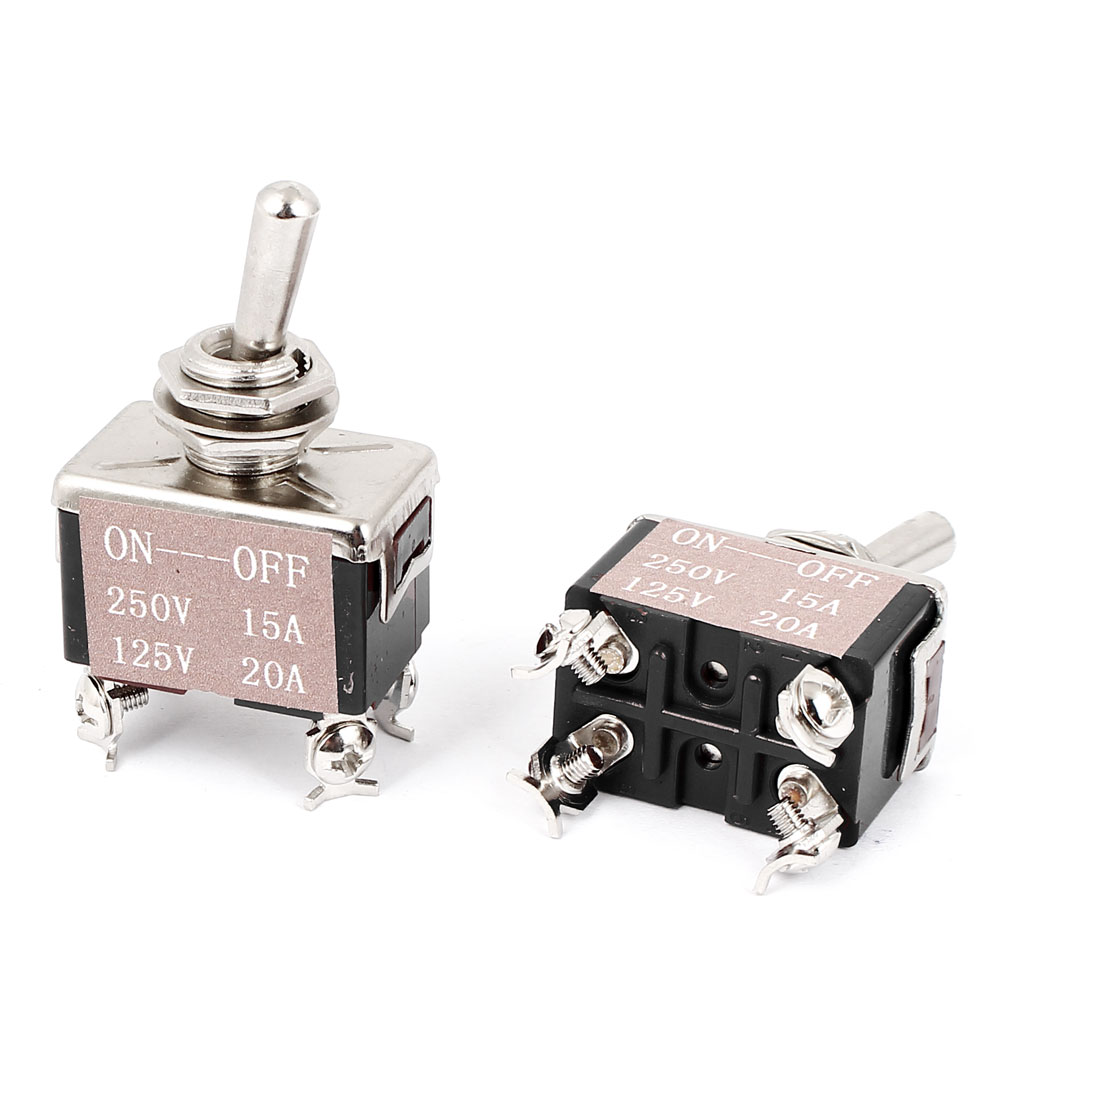 AC 250V/15A 125V/20A DPST ON-OFF 4 Terminals Latching Toggle Switch 2pcs